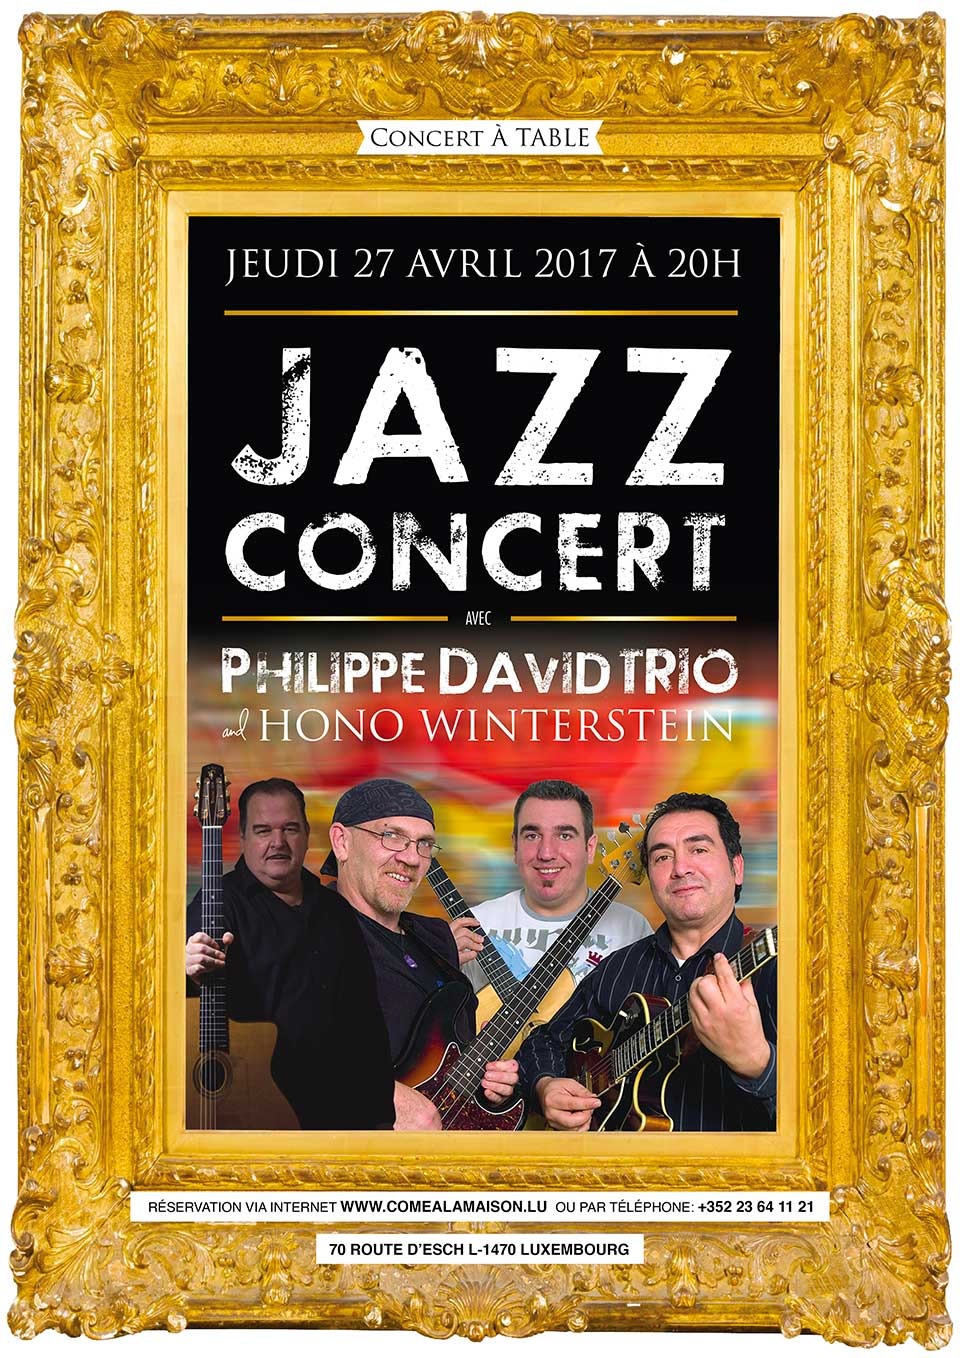 Philippe David Trio & Hono Winterstein